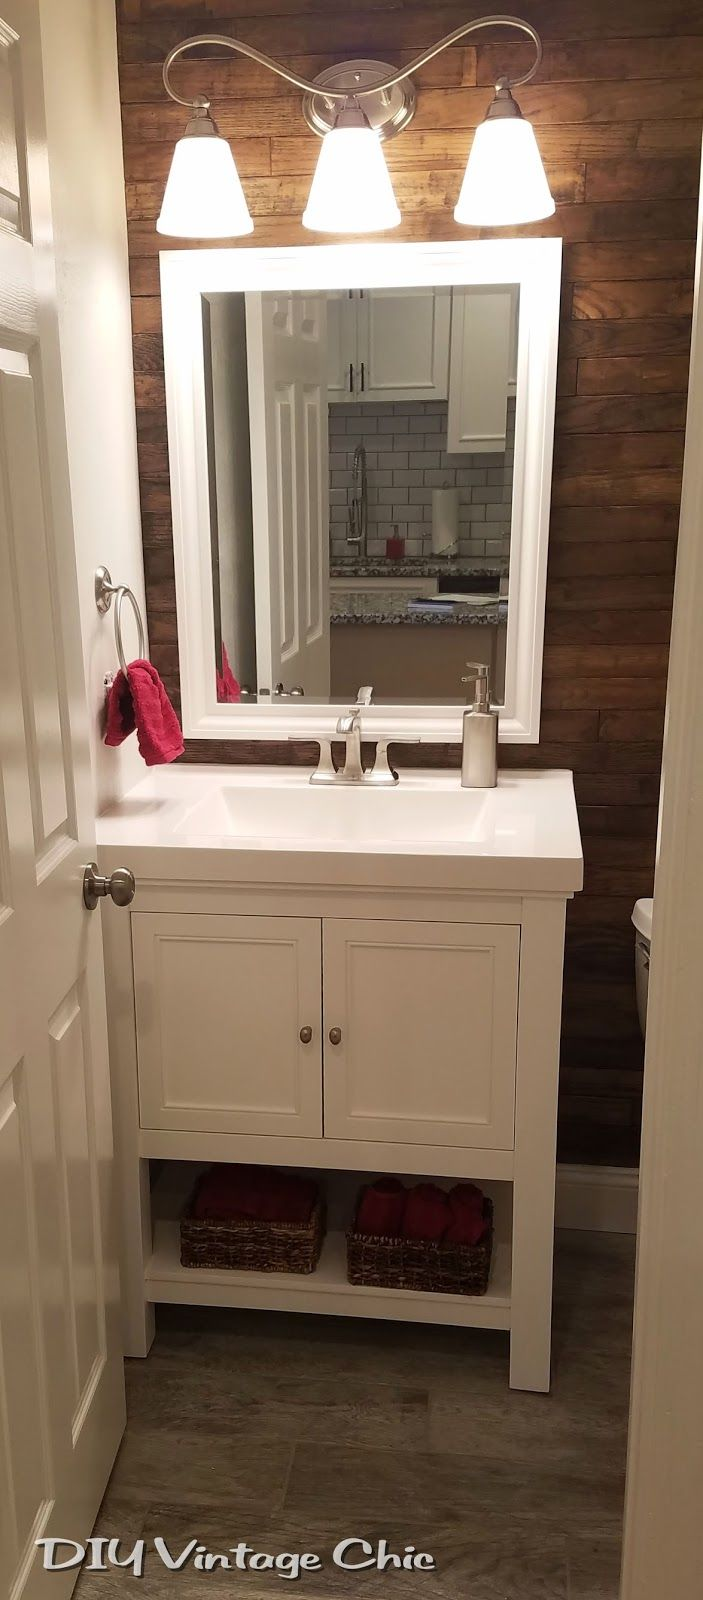 A Blog About Diy Vintage Chic Decor Bathroom Remodel With